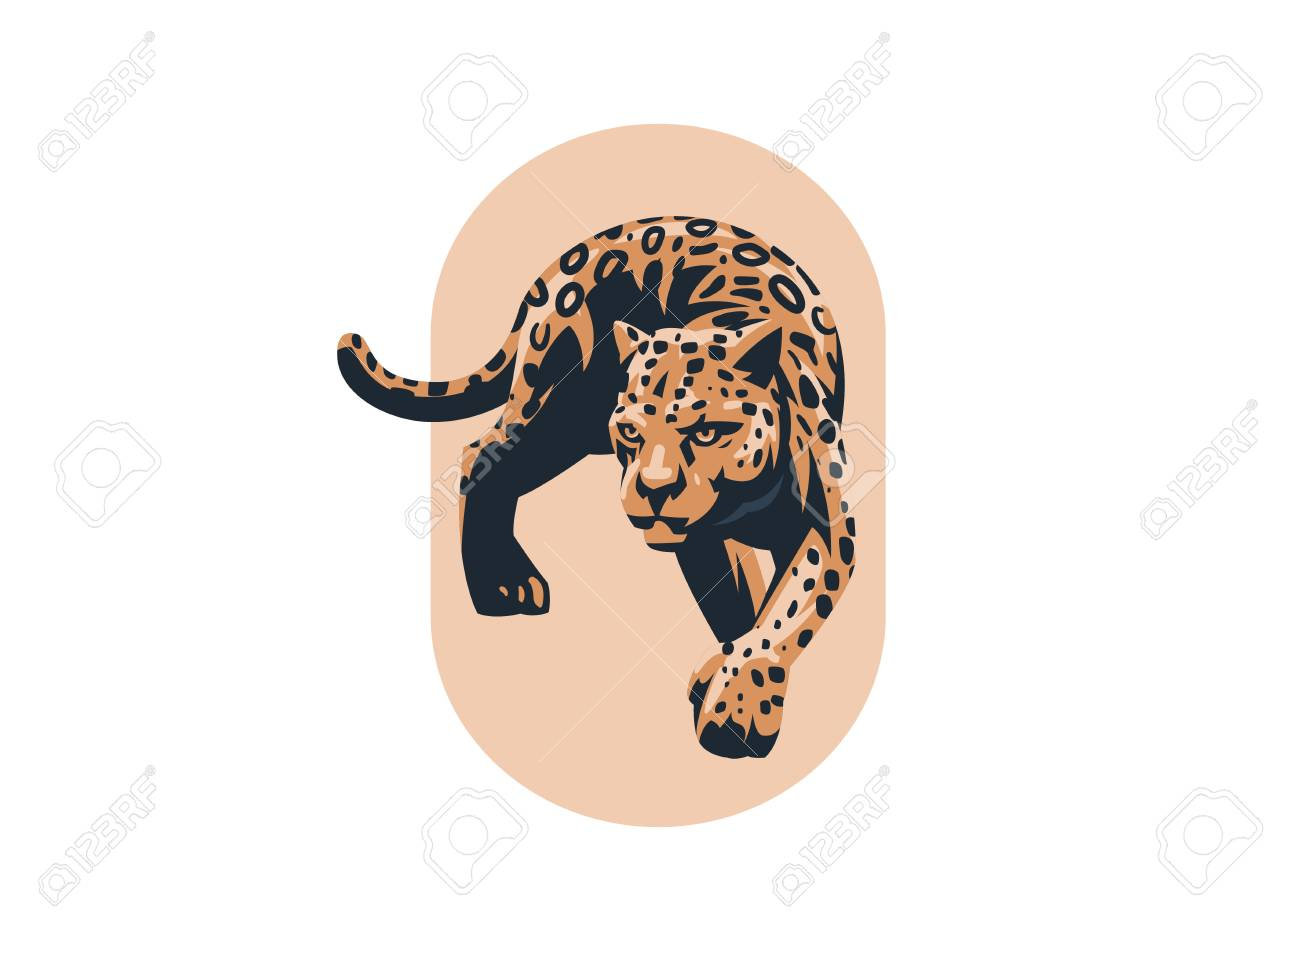 a panther or a